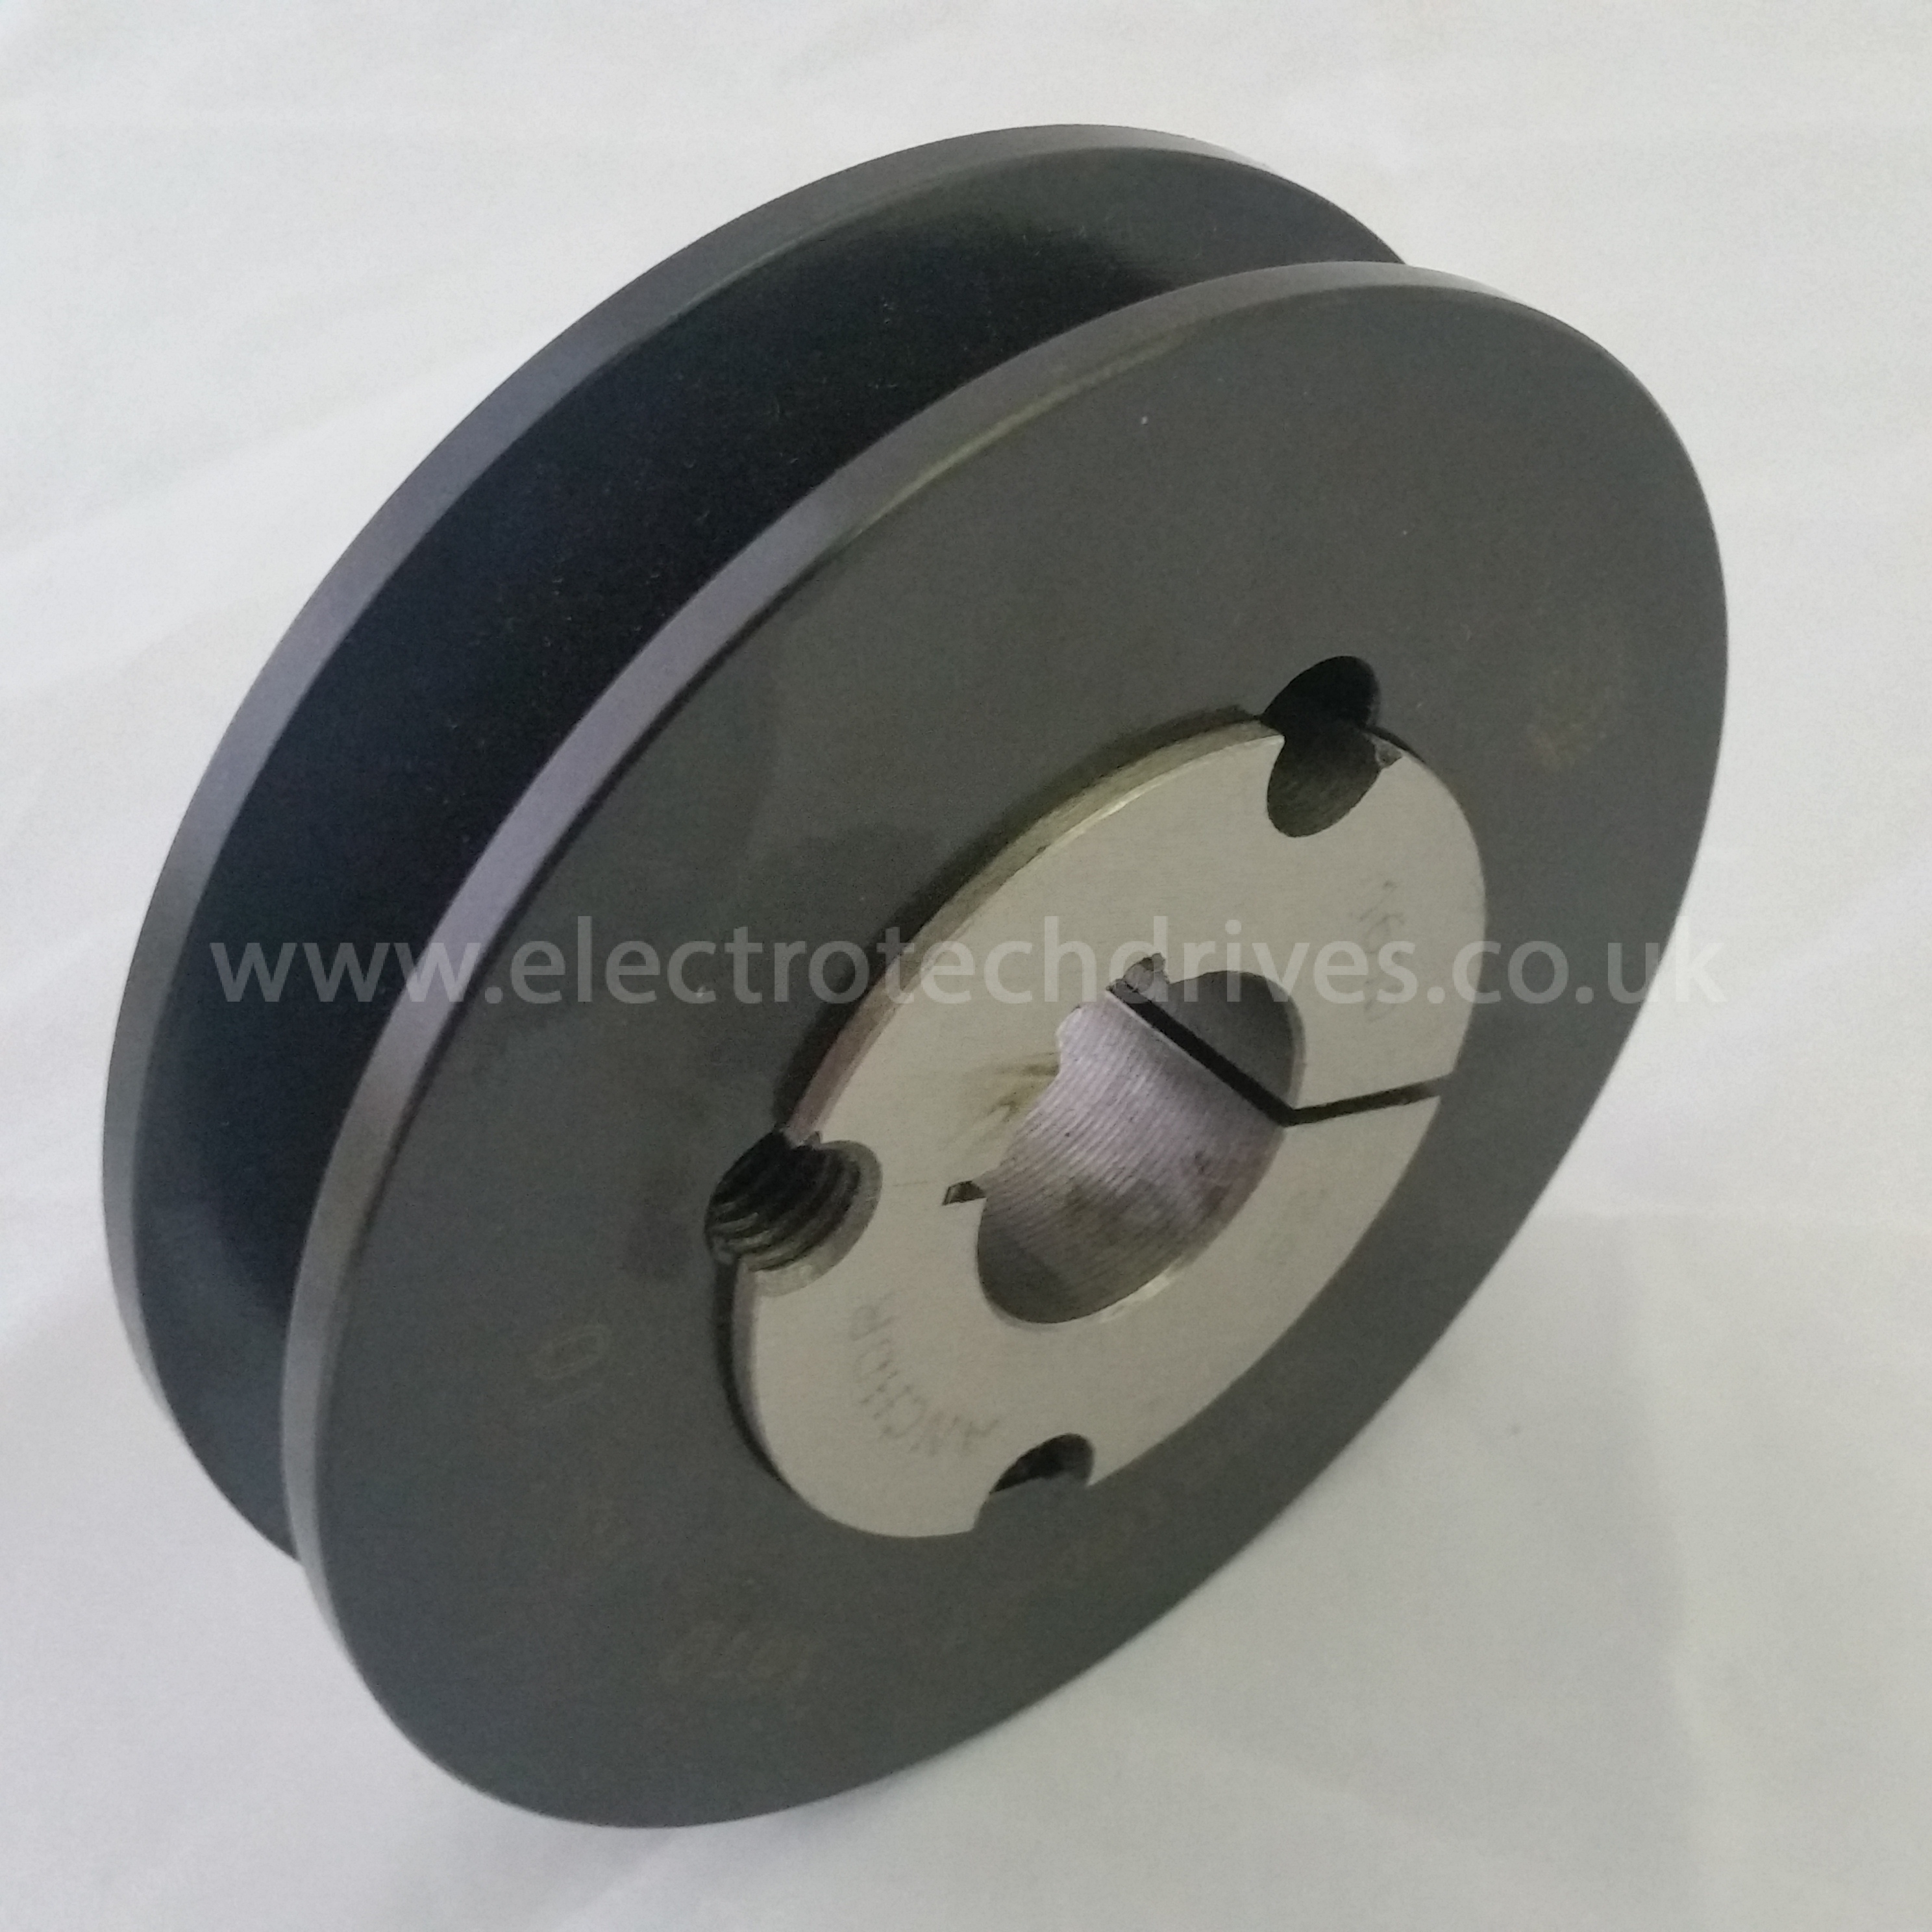 Spb100x1 Single Pulley With 1610 Taper Lock Bush To Suit